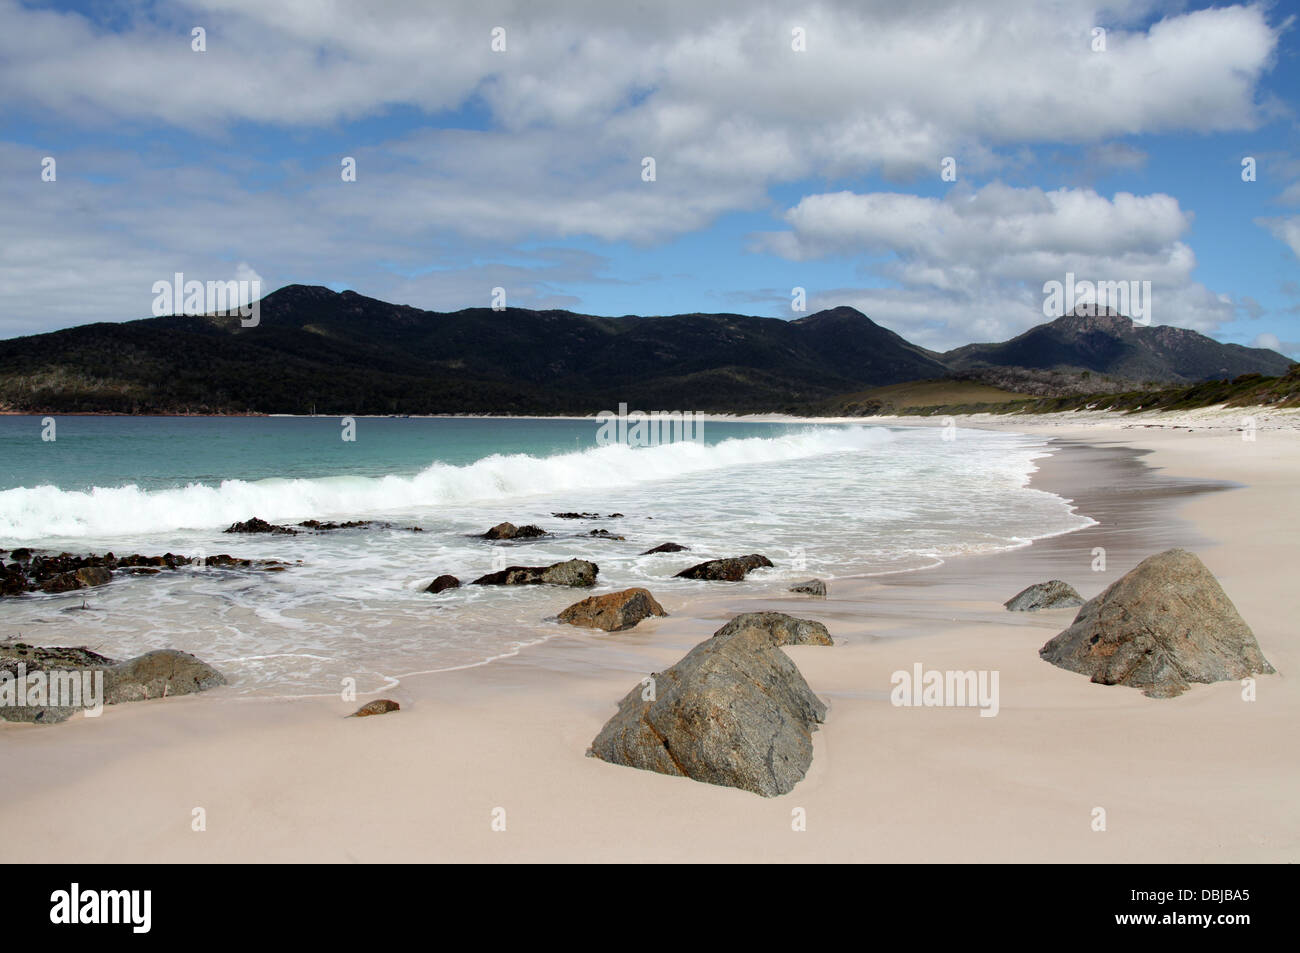 The fabulous beach of Wineglass Bay in Freycinet National Park which forms part of the Peninsula Circuit Walk. - Stock Image